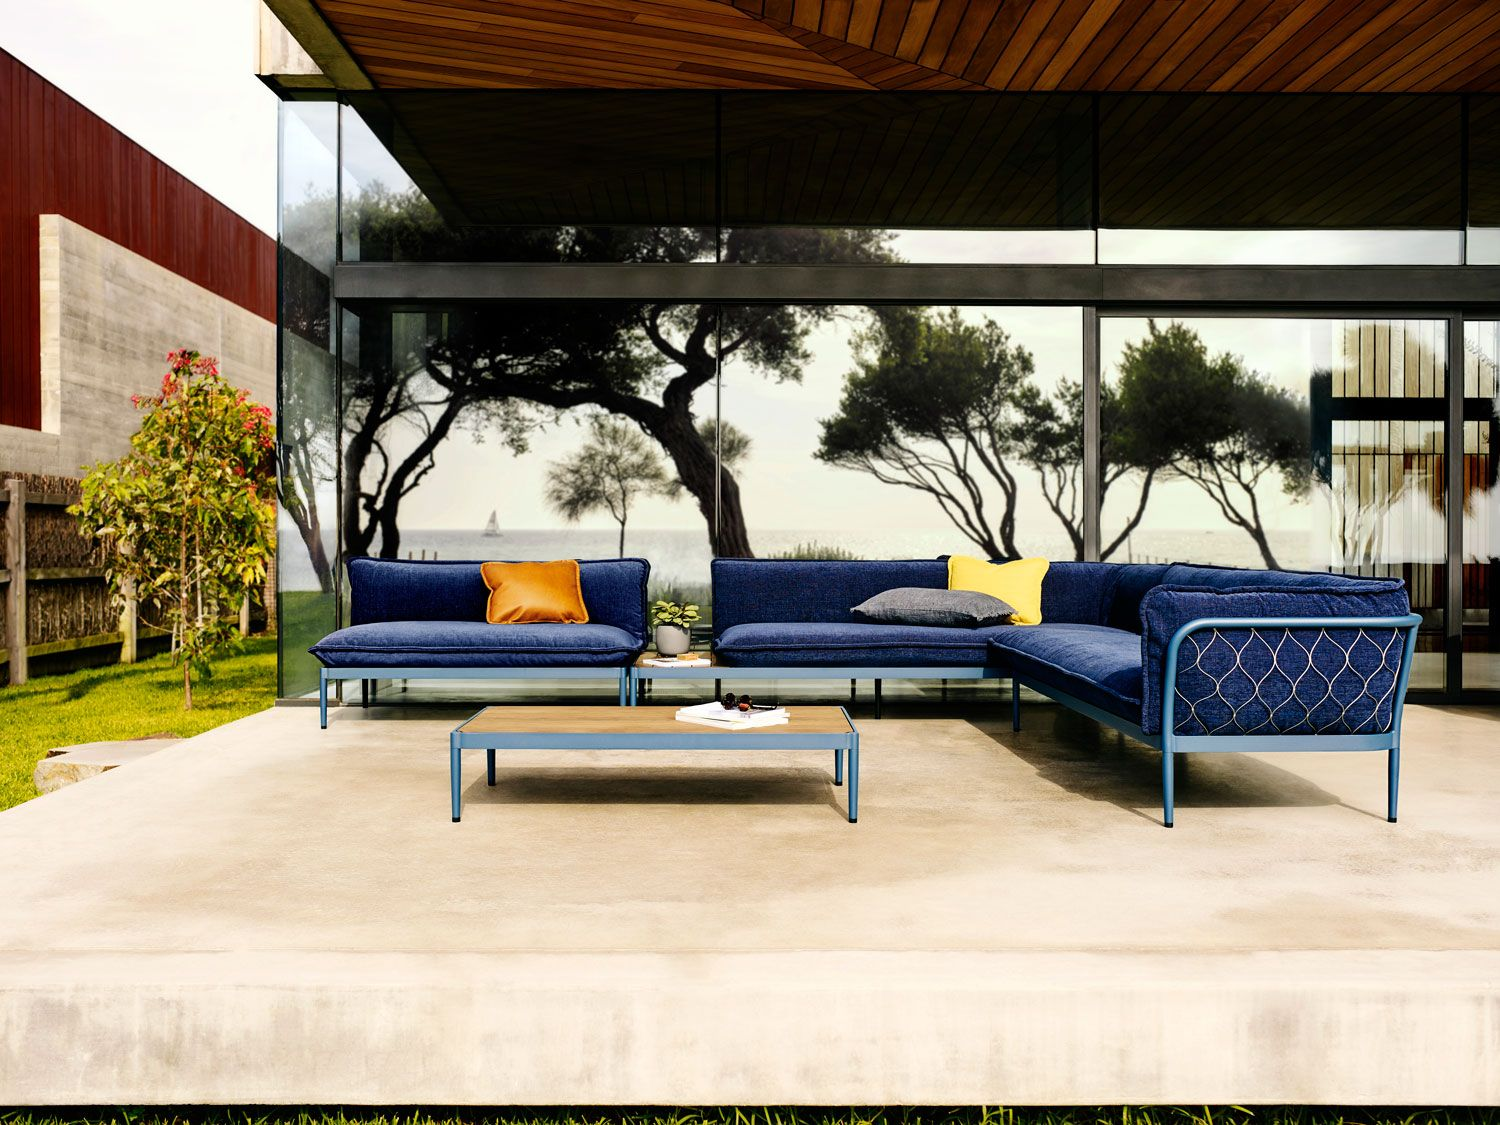 Trace Outdoor Collection By Adam Goodrum For Tait